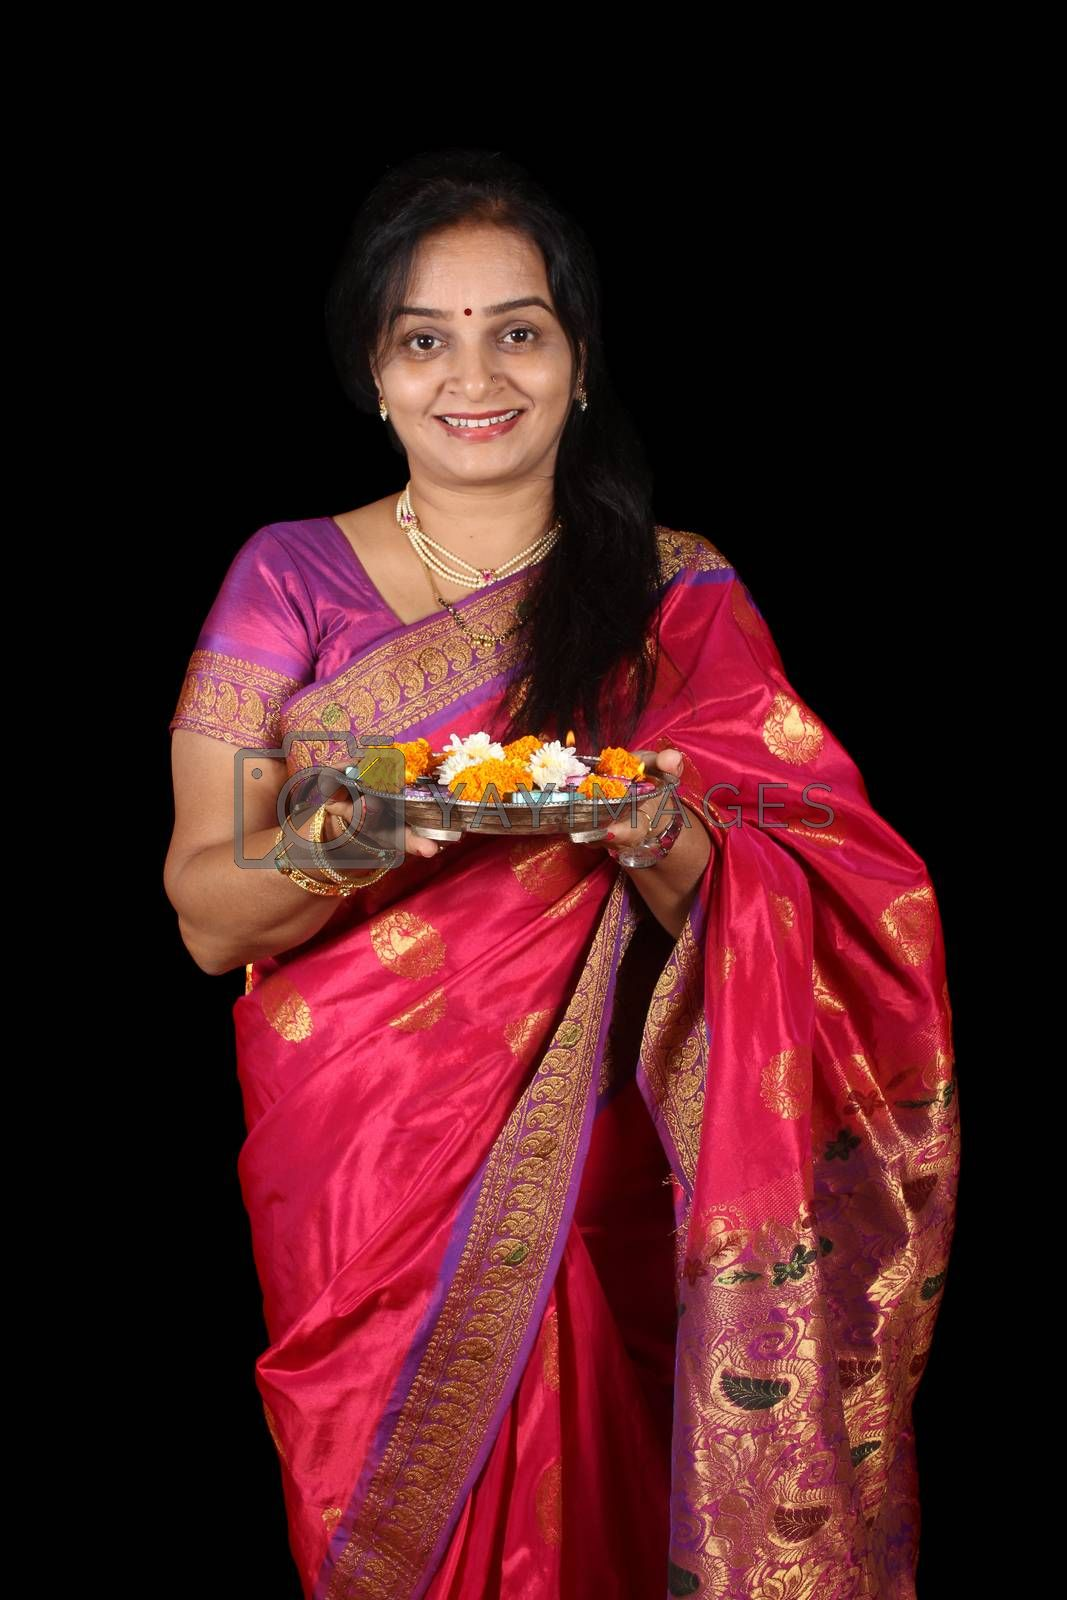 A beautiful middle aged Indian woman smiling happily while holding a traditional plate of Hindu rituals for Diwali festival in India.